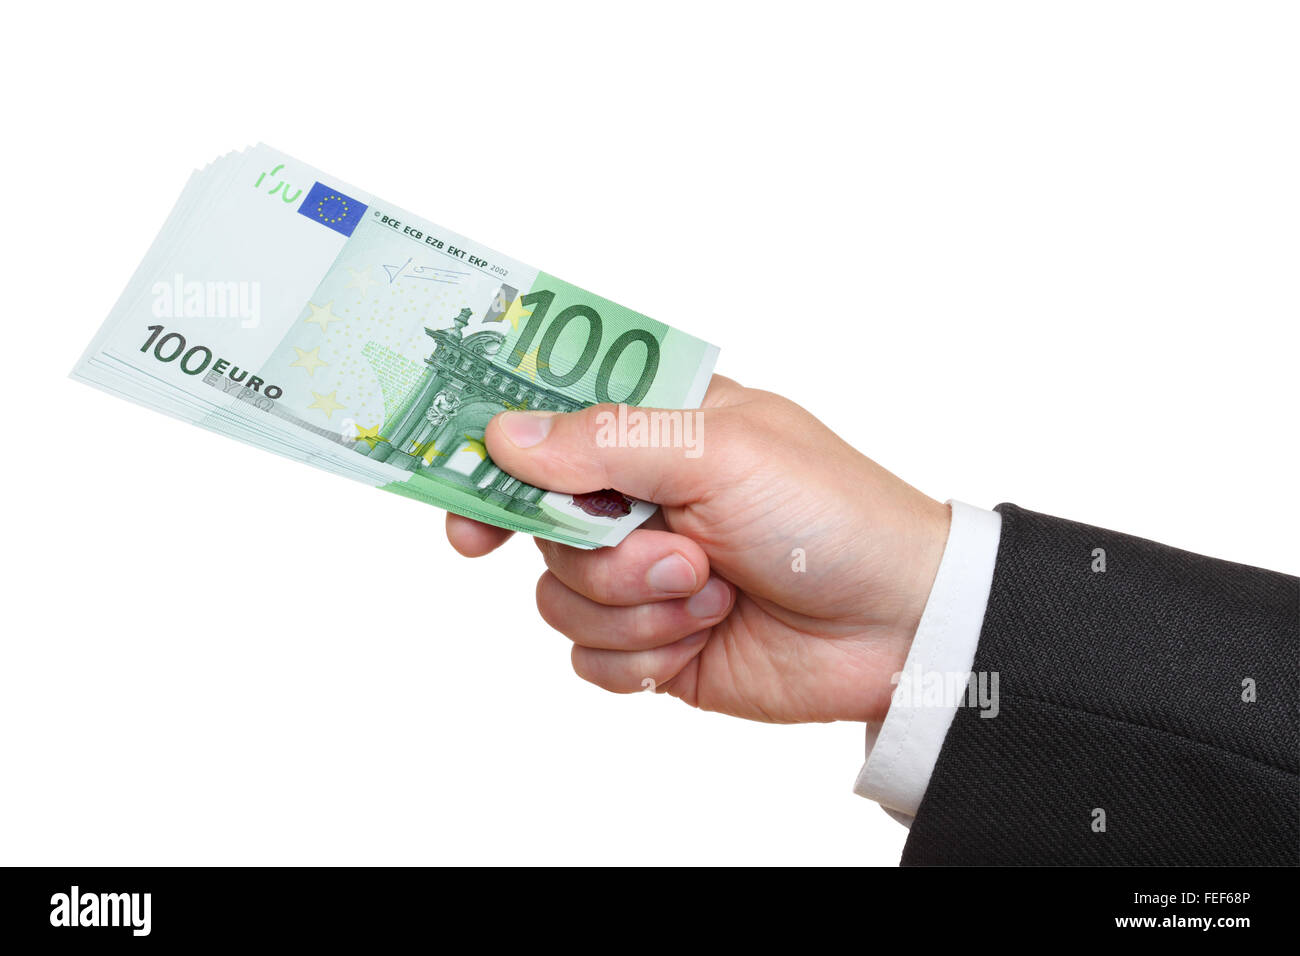 Hand of businessman holding one hundred euro banknotes,  isolated on the white background, clipping path included. - Stock Image